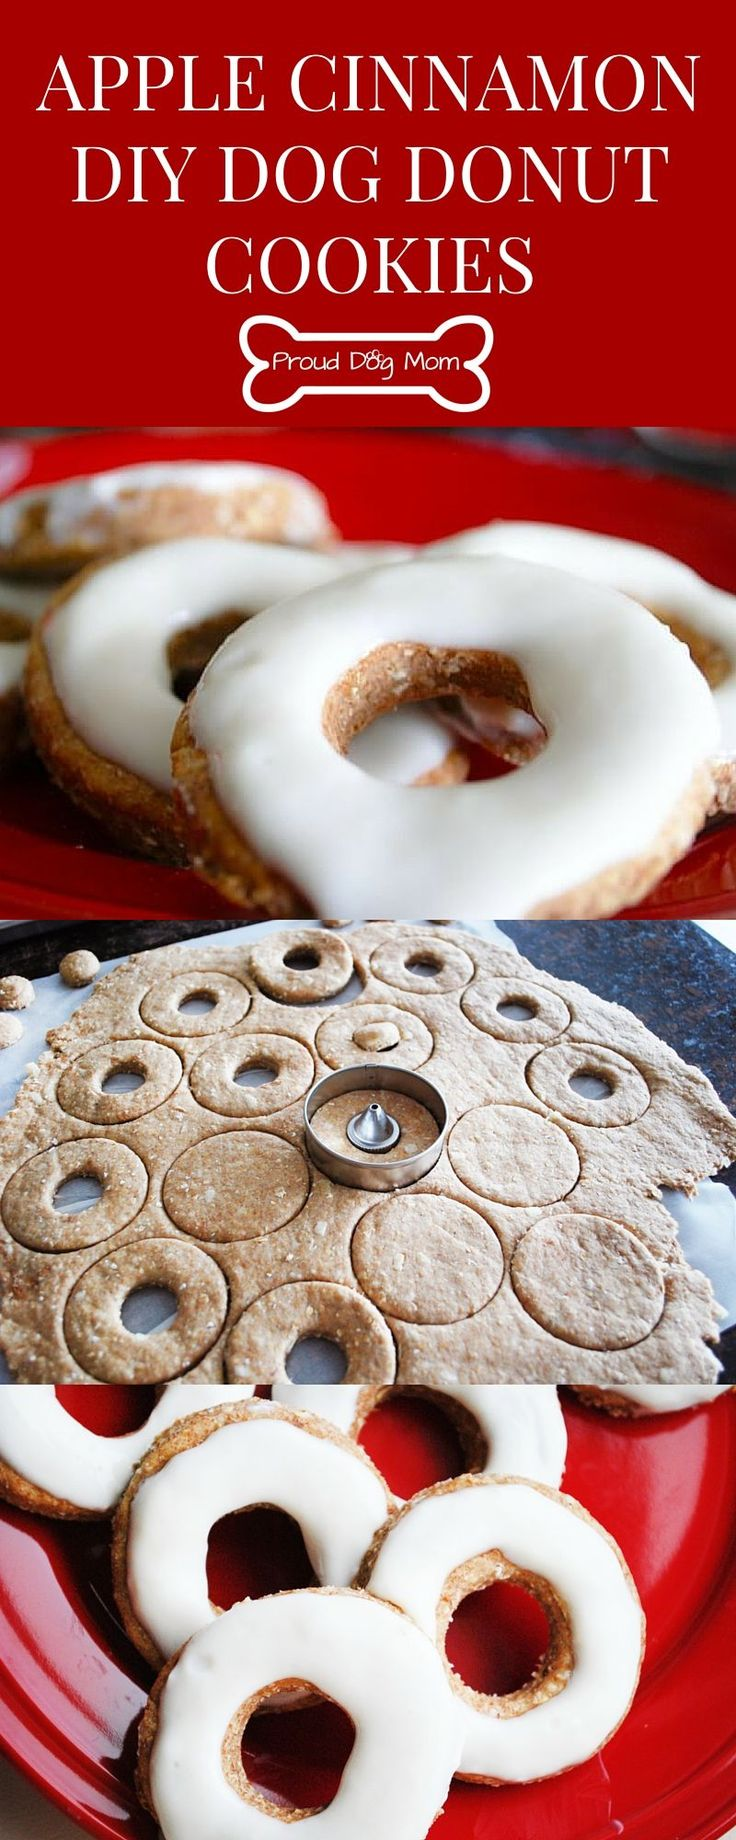 Apple Cinnamon DIY Dog Donut Cookies | Homemade Dog Treats | Dog Doughnuts | Dog Biscuits |